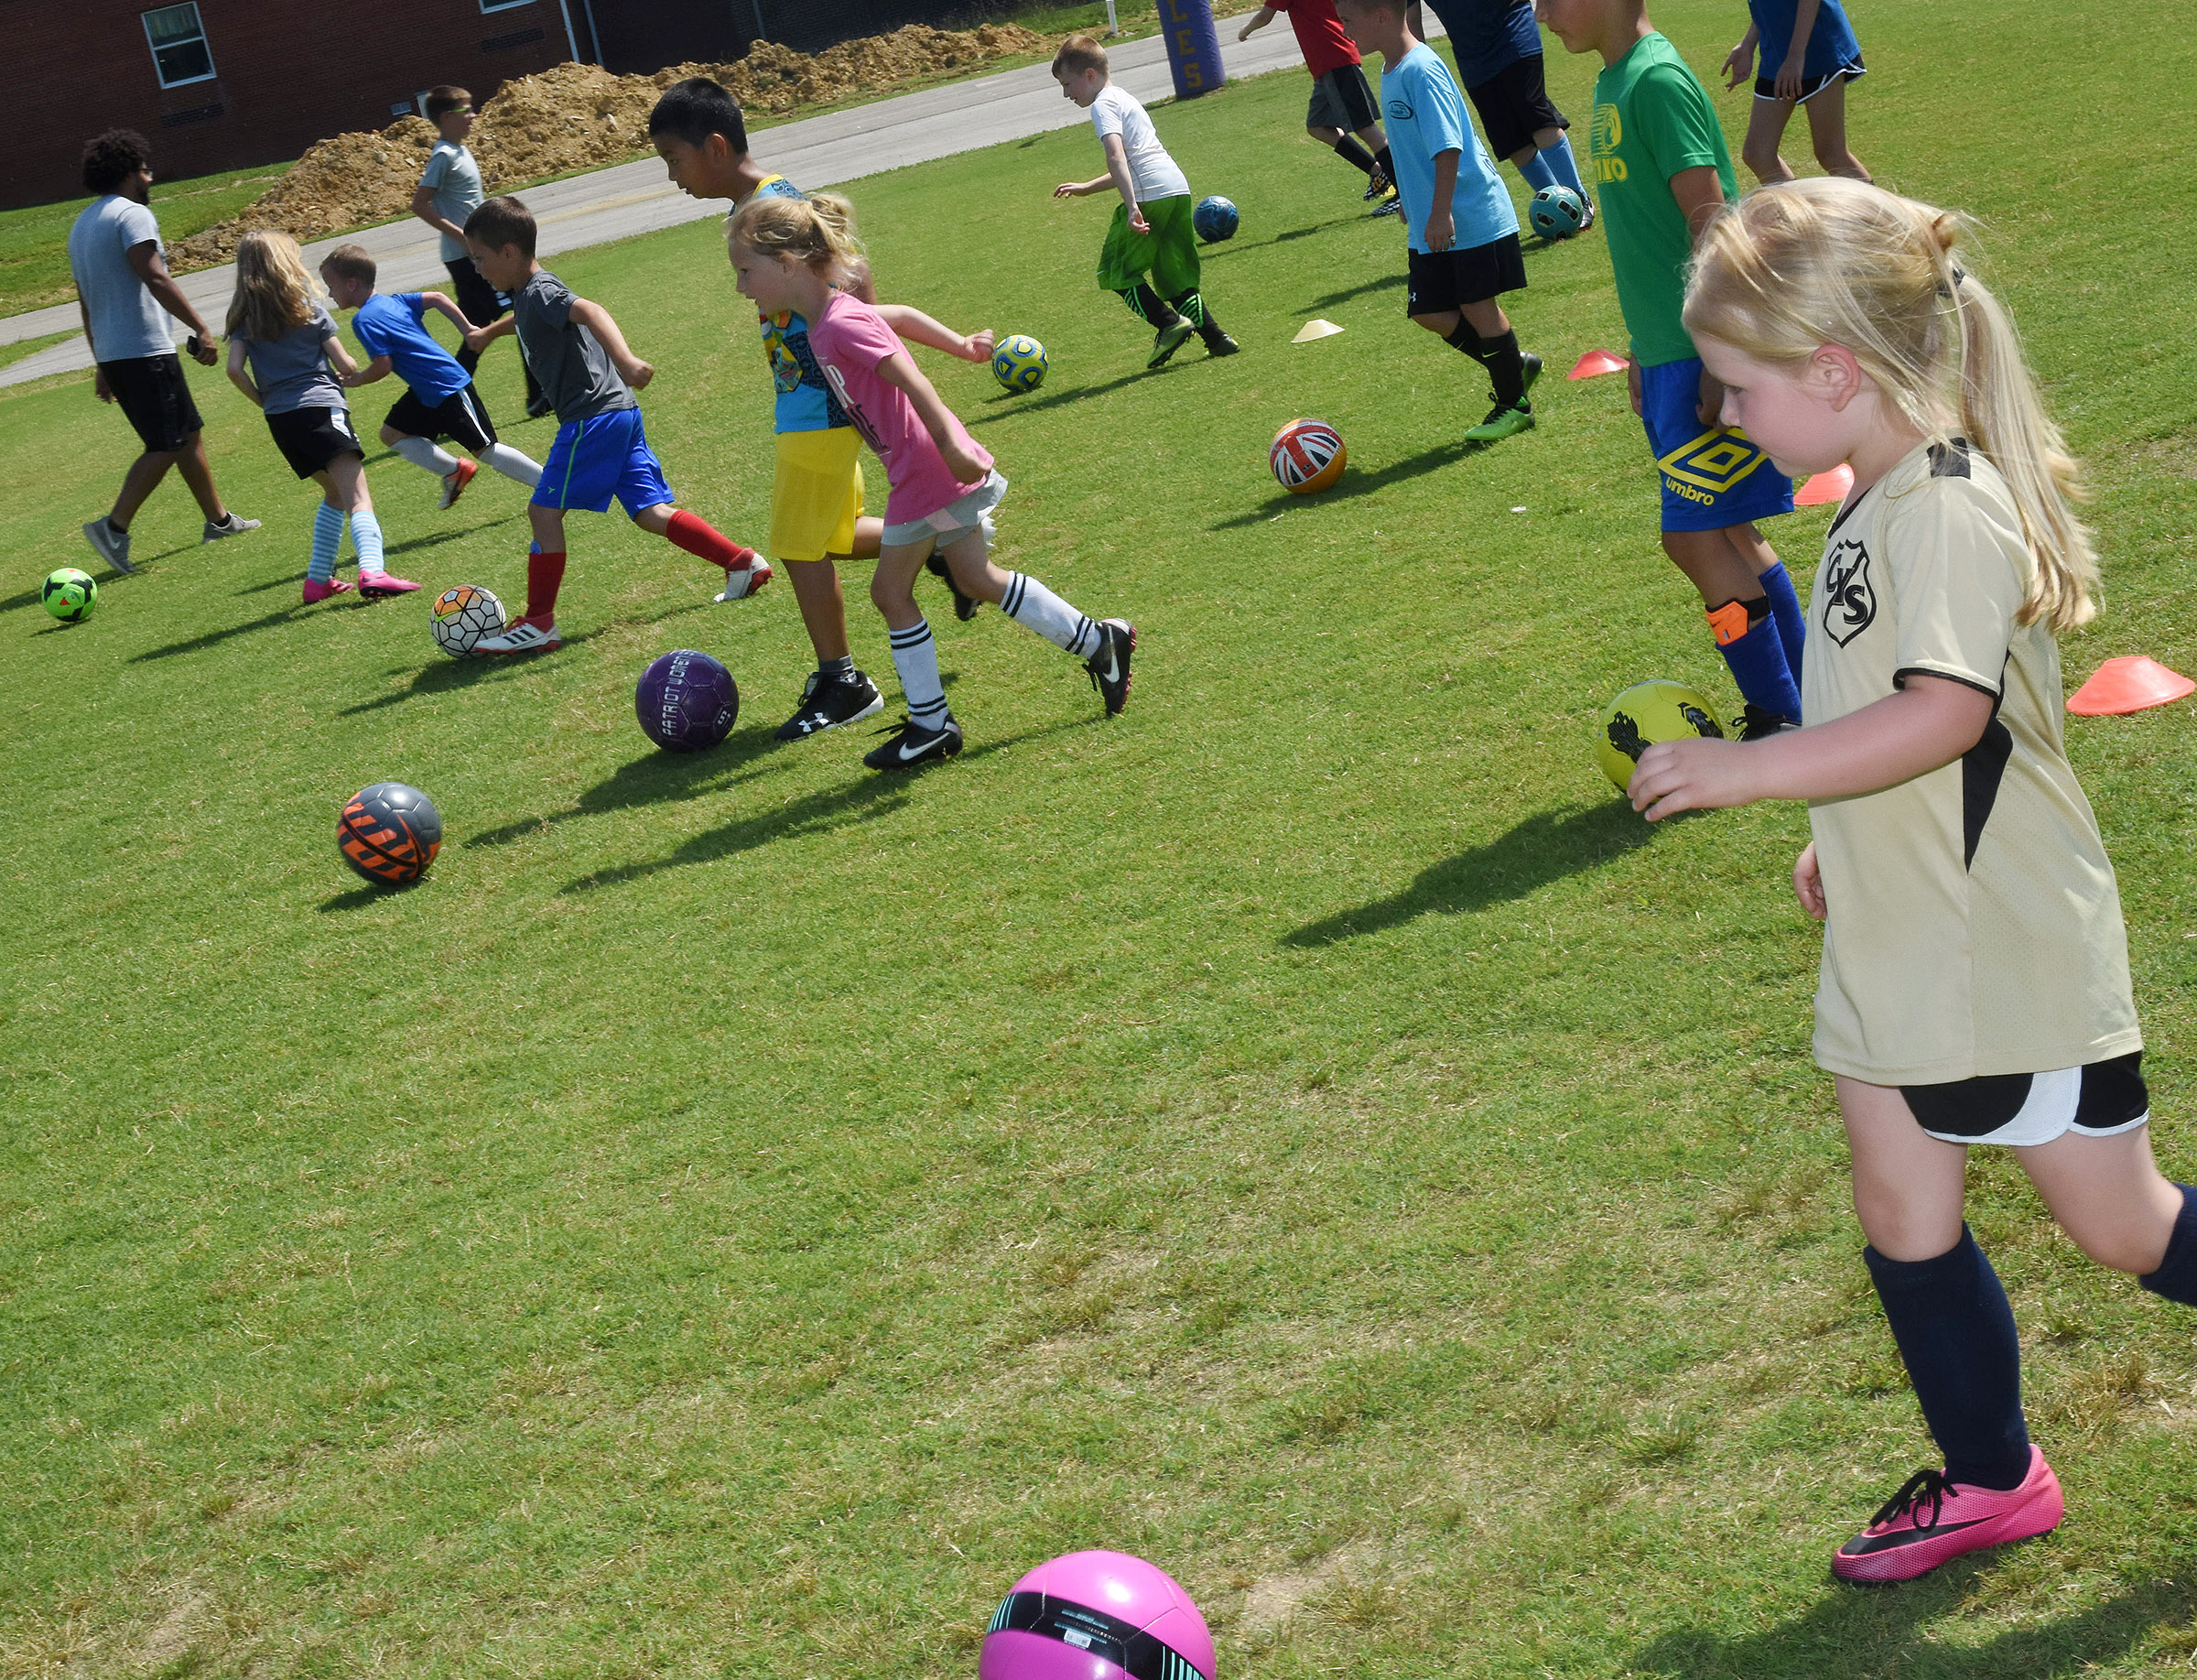 CHS soccer youth campers compete in a drill.